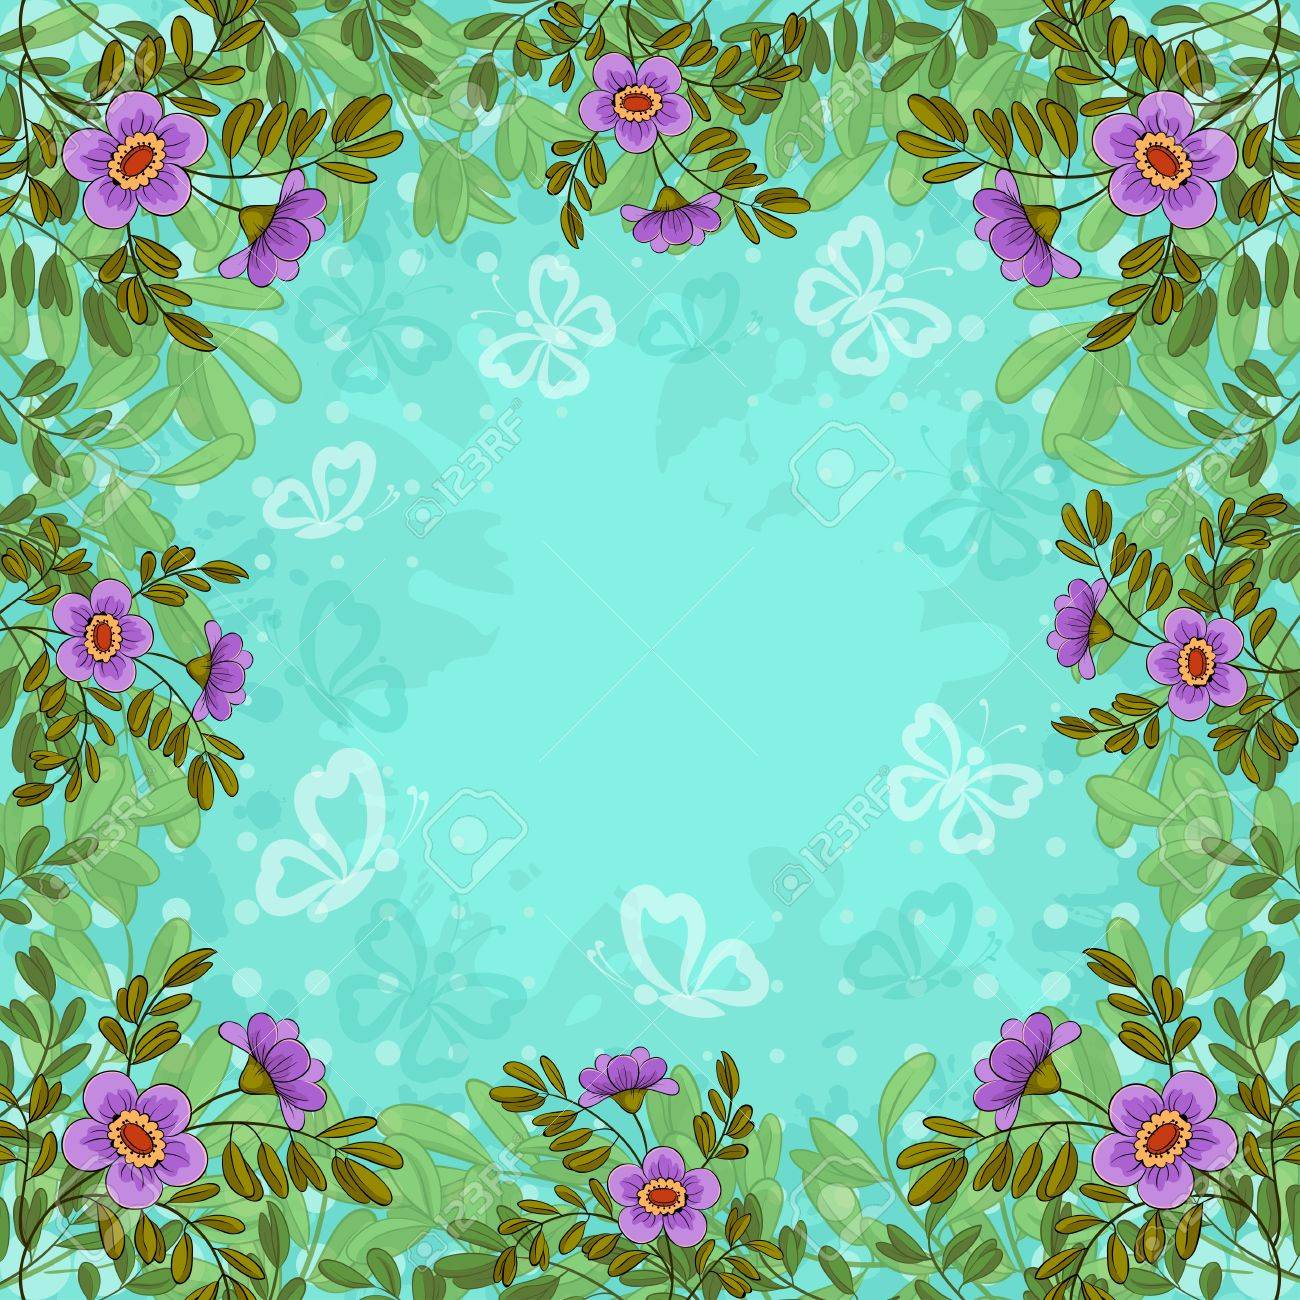 Summer flowers, lives and butterflies silhouettes on background of blue sky Stock Vector - 13515858